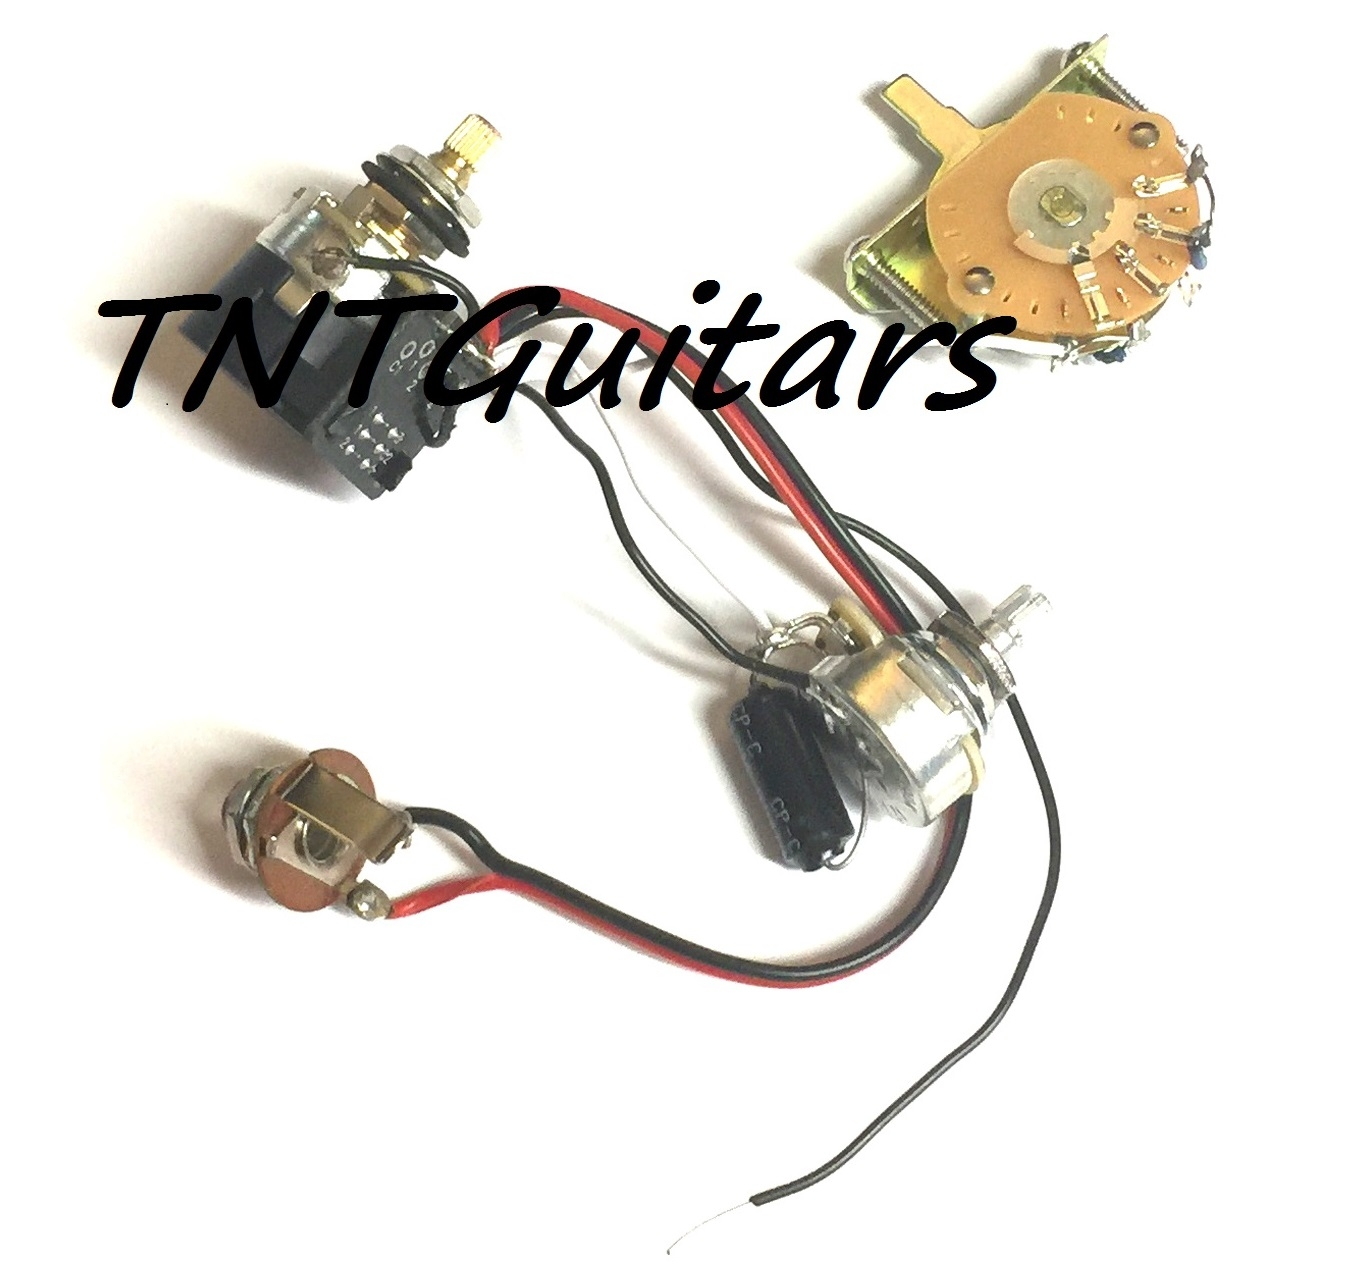 1v1t Prewired Harness 2 Pickup Cts Push Pull Pots 3 Way Fcs Blade Pushpull Pot For Tone Control Also Capacitors Are Not Typical Switch